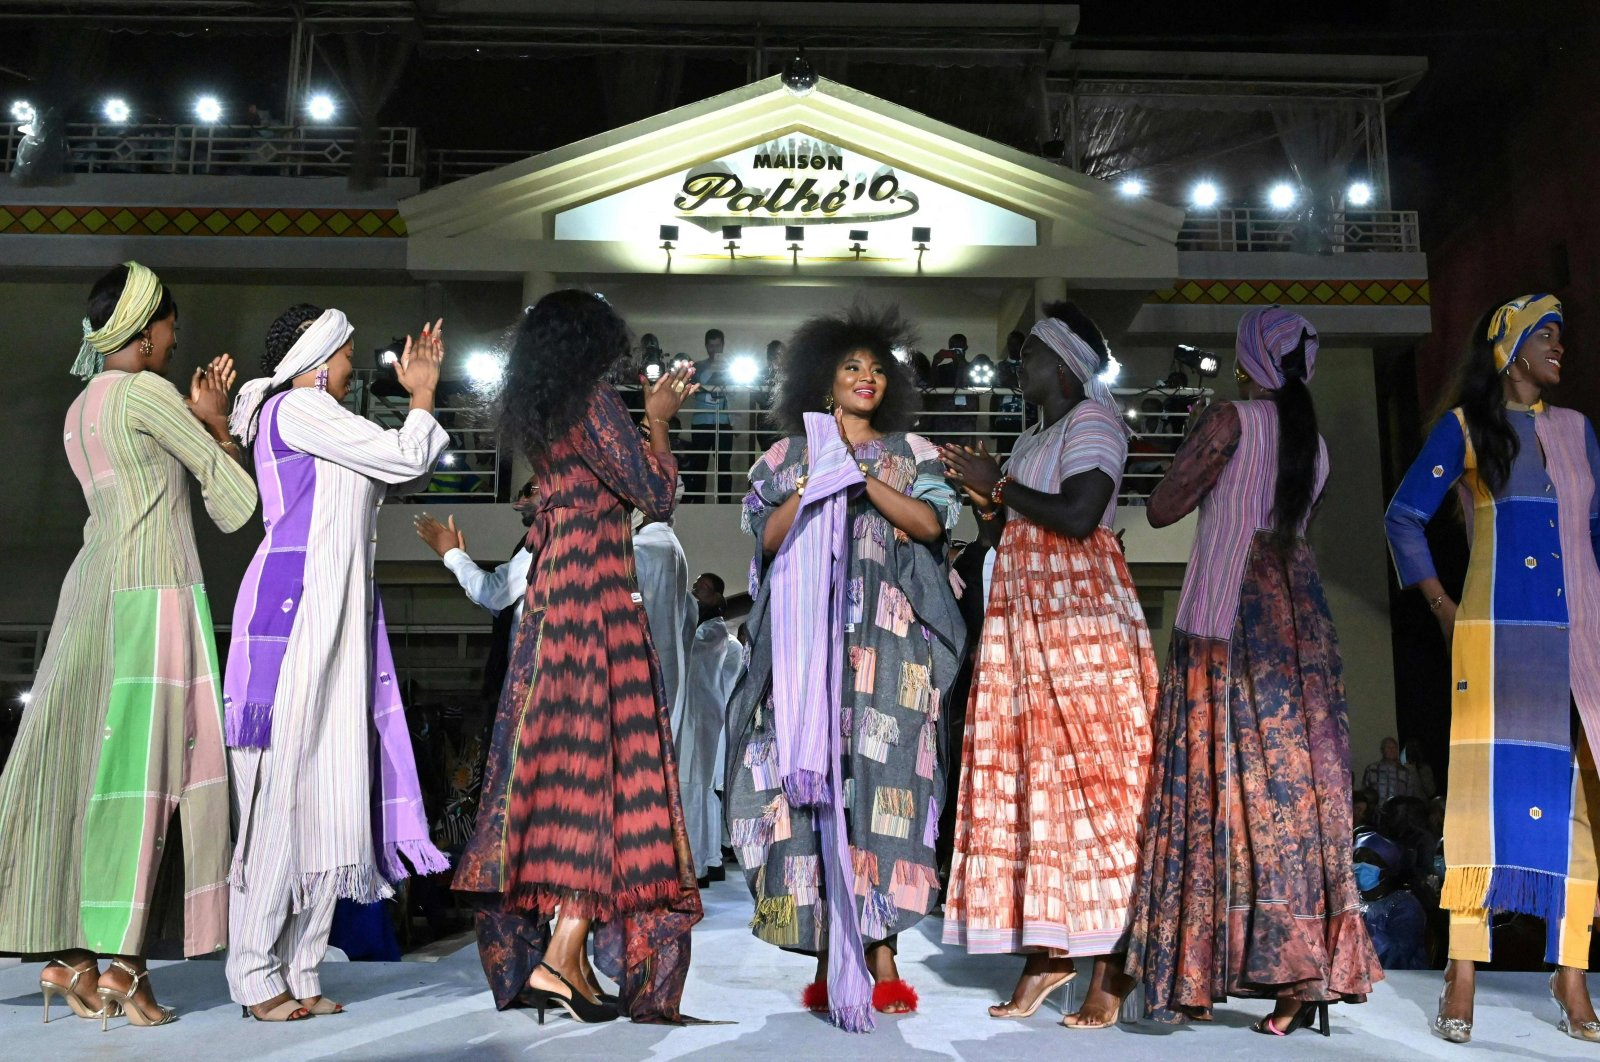 """Models present Pathe'O's curations during a fashion show celebrating 50 years of """"Maison Pathe'O"""" in Abidjan, Ivory Coast, May 29, 2021. (AFP Photo)"""